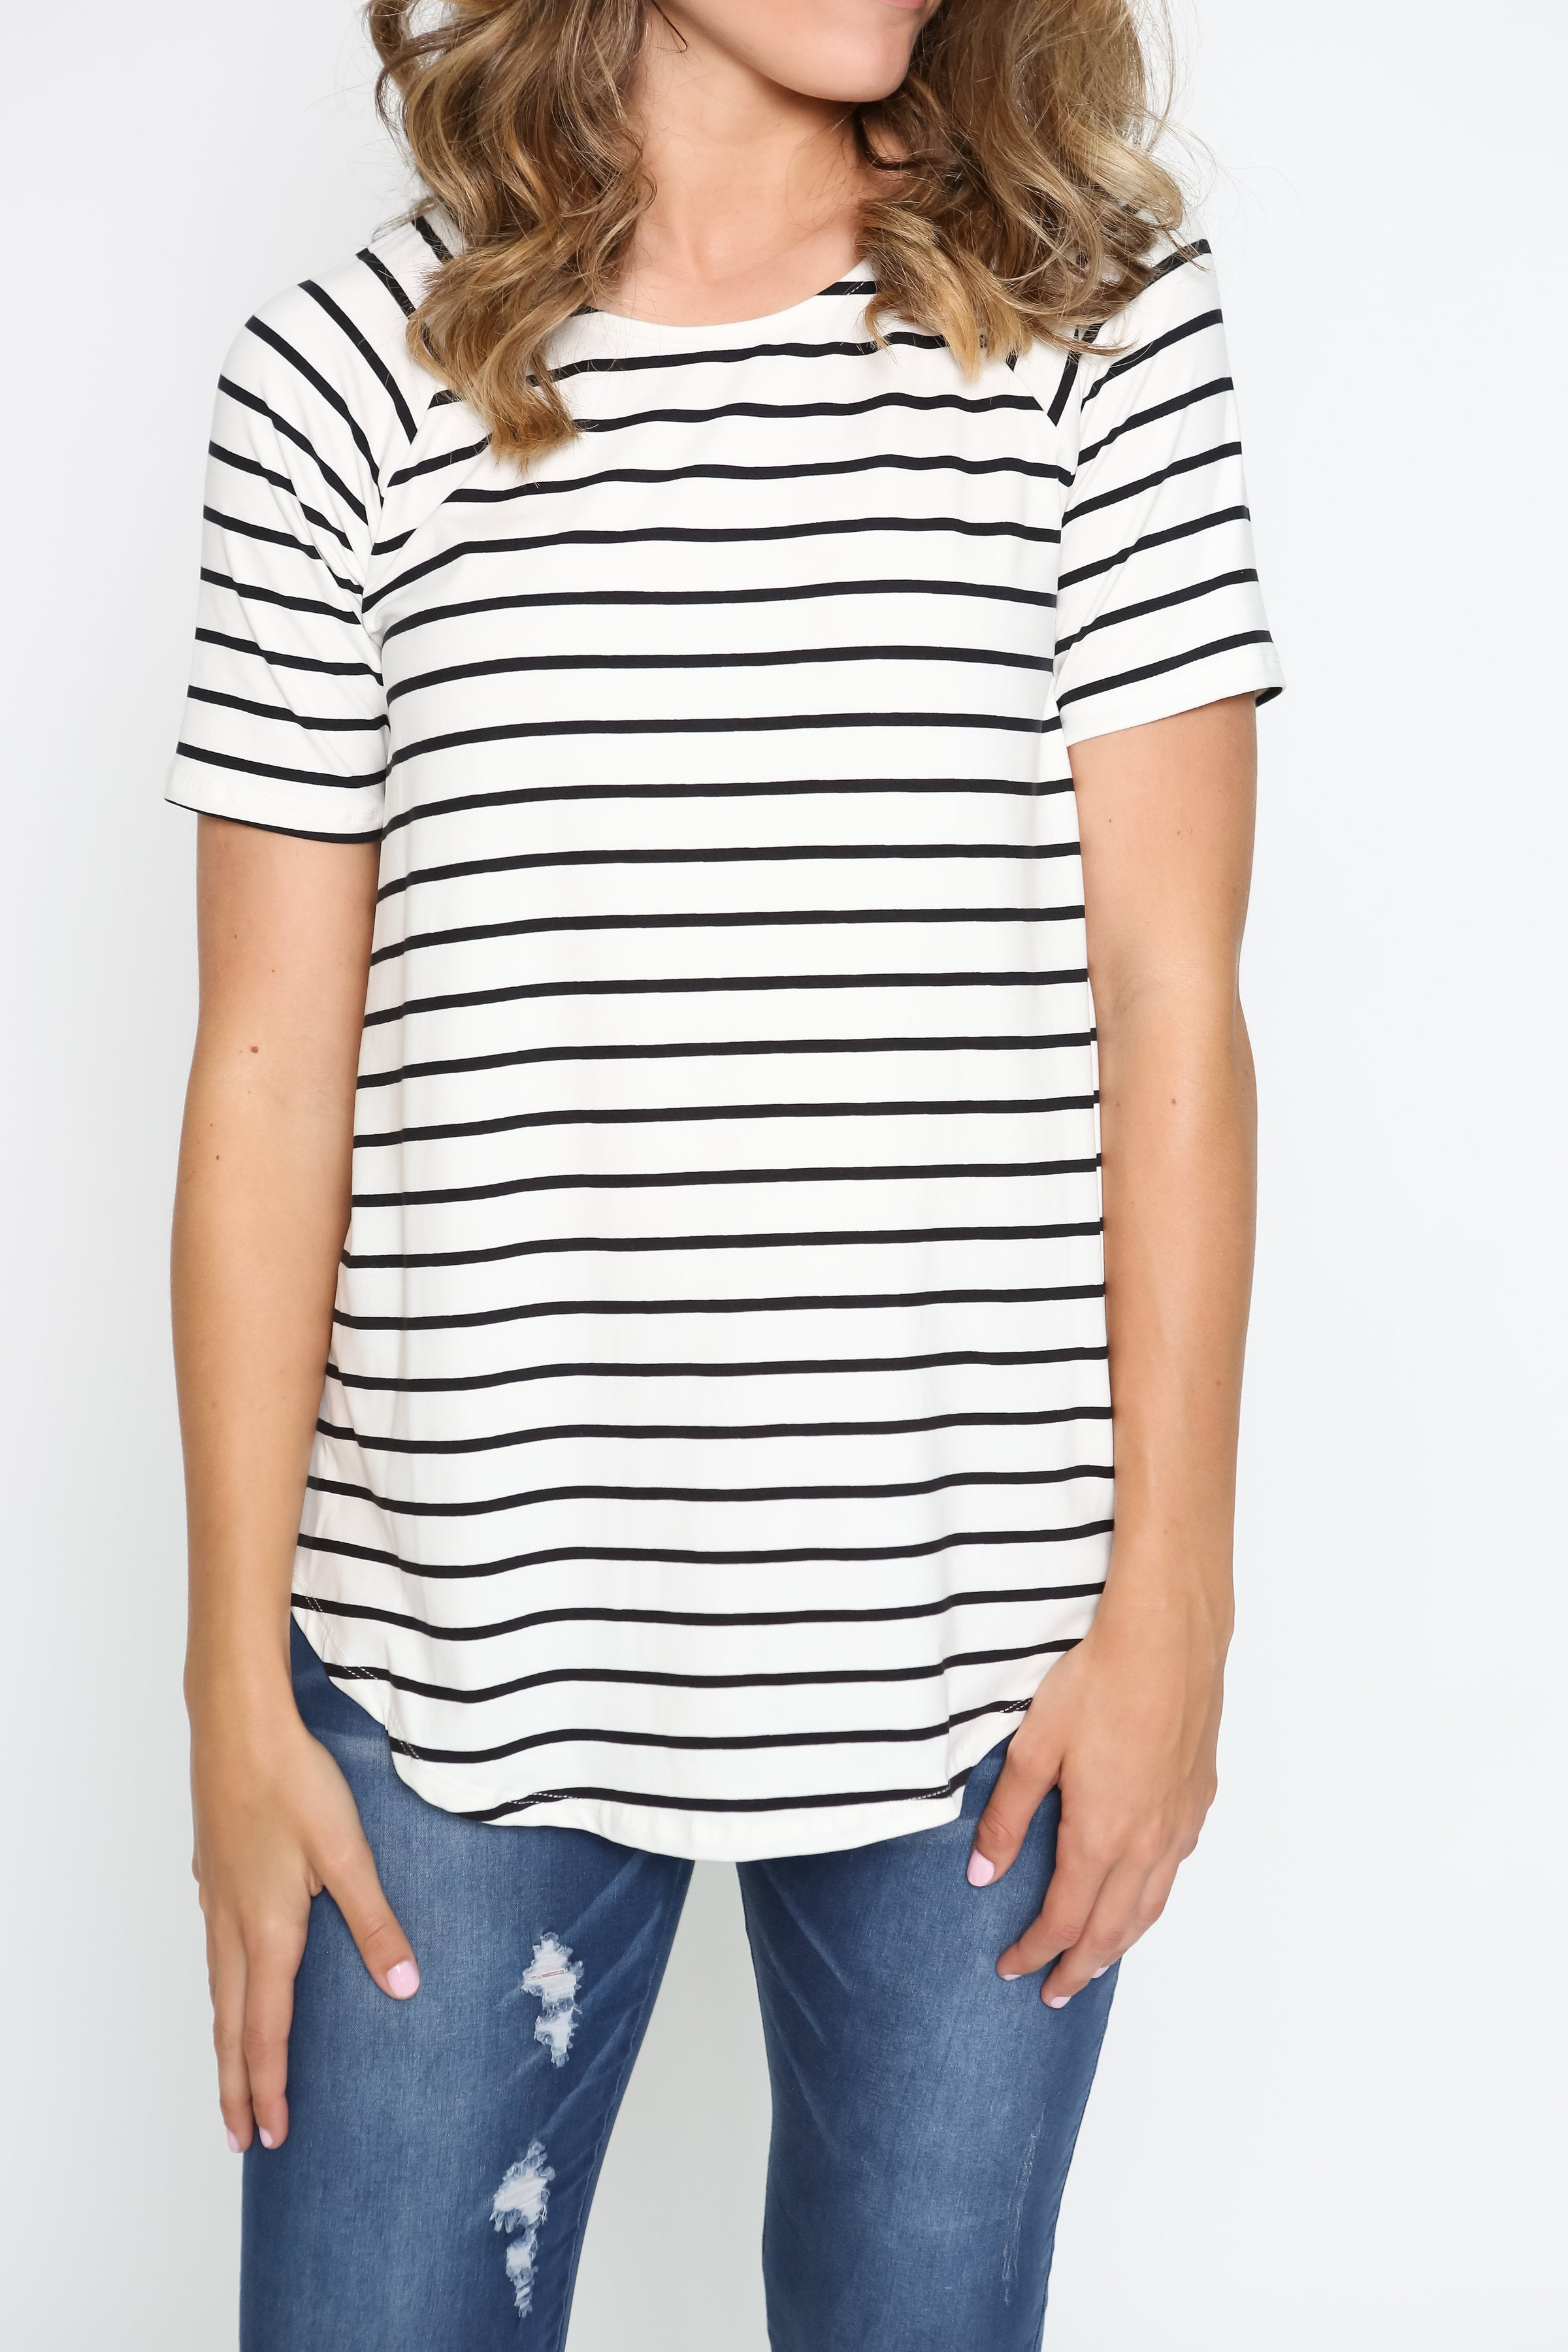 Cameron Striped Tee - Ivory